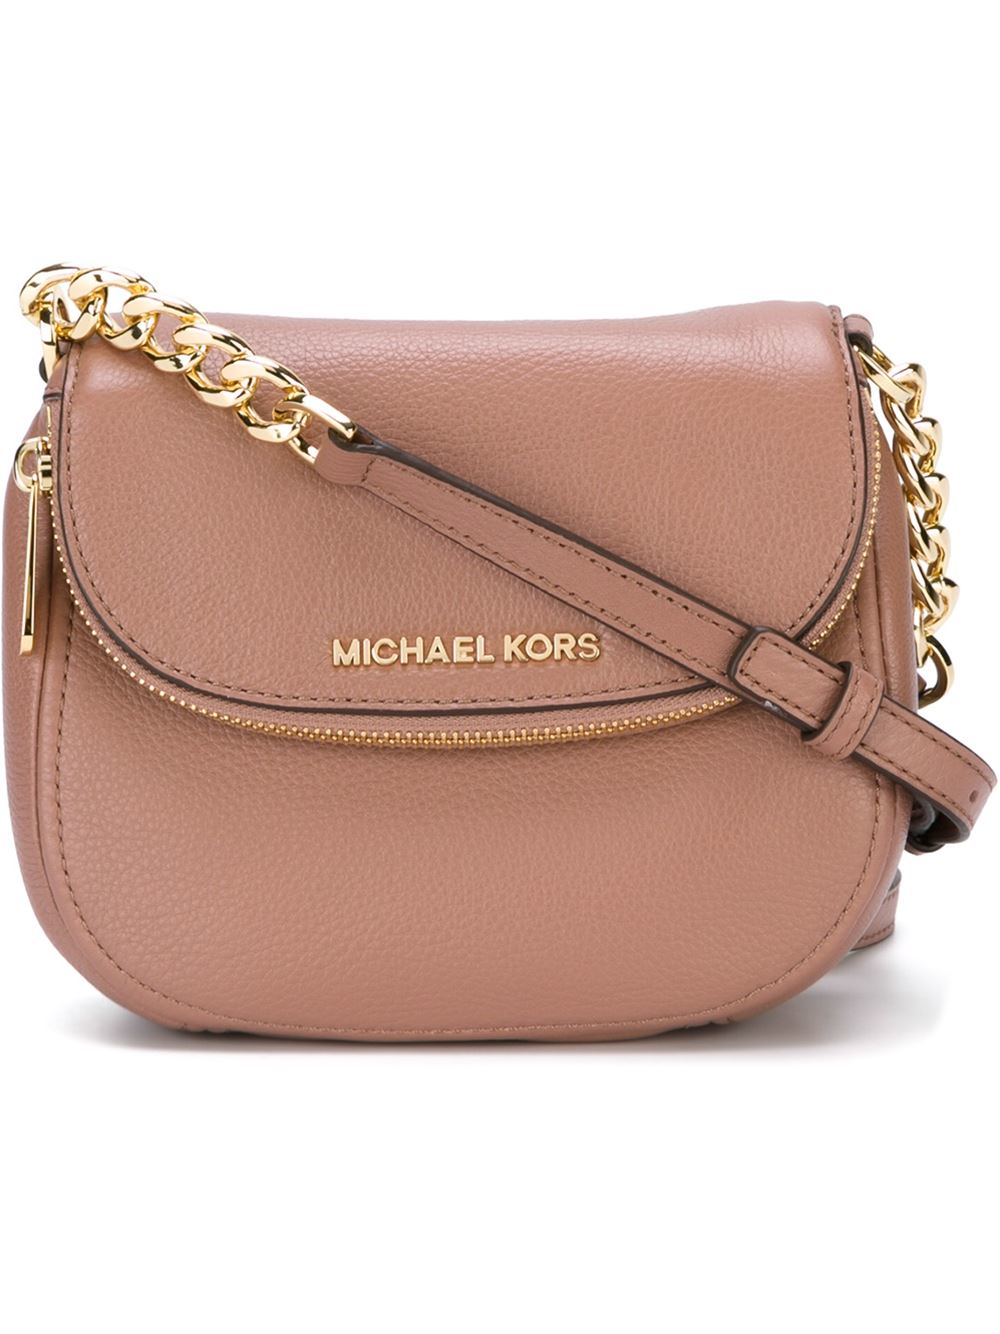 553e53a4a177 MICHAEL Michael Kors 'bedford' Crossbody Bag in Pink - Lyst